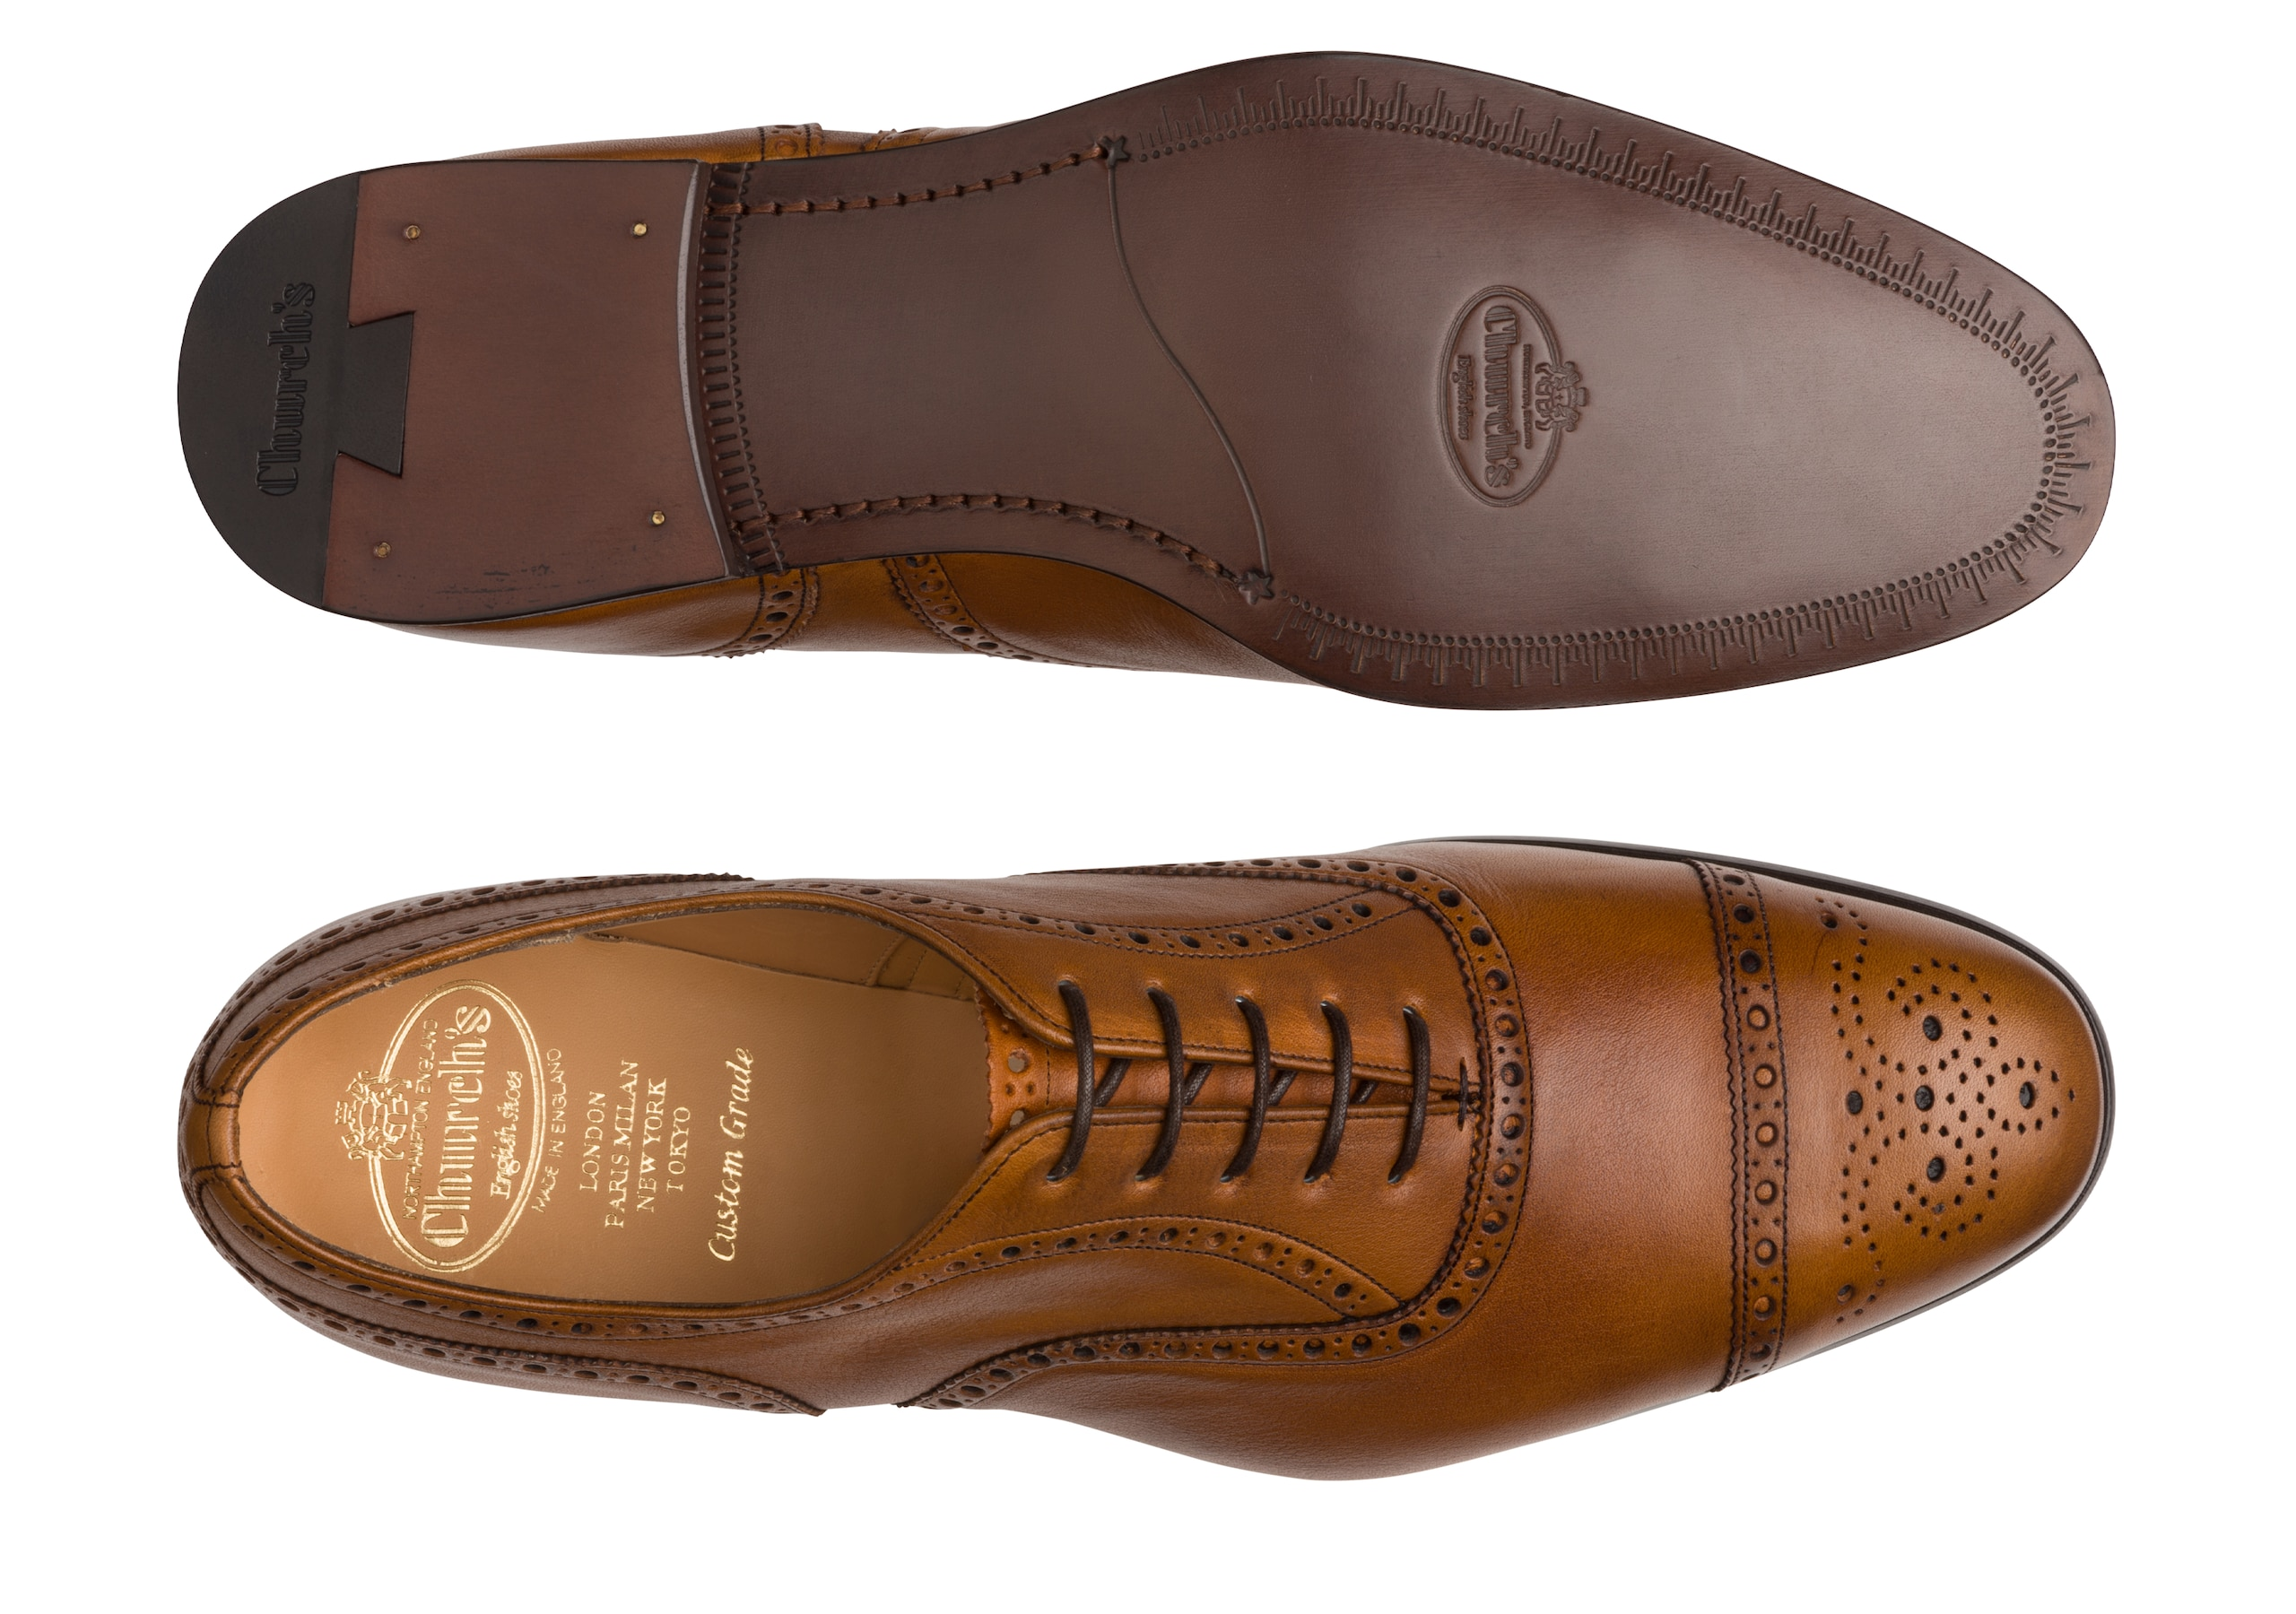 Duxford Church's Vintage Calf Leather Oxford Brown